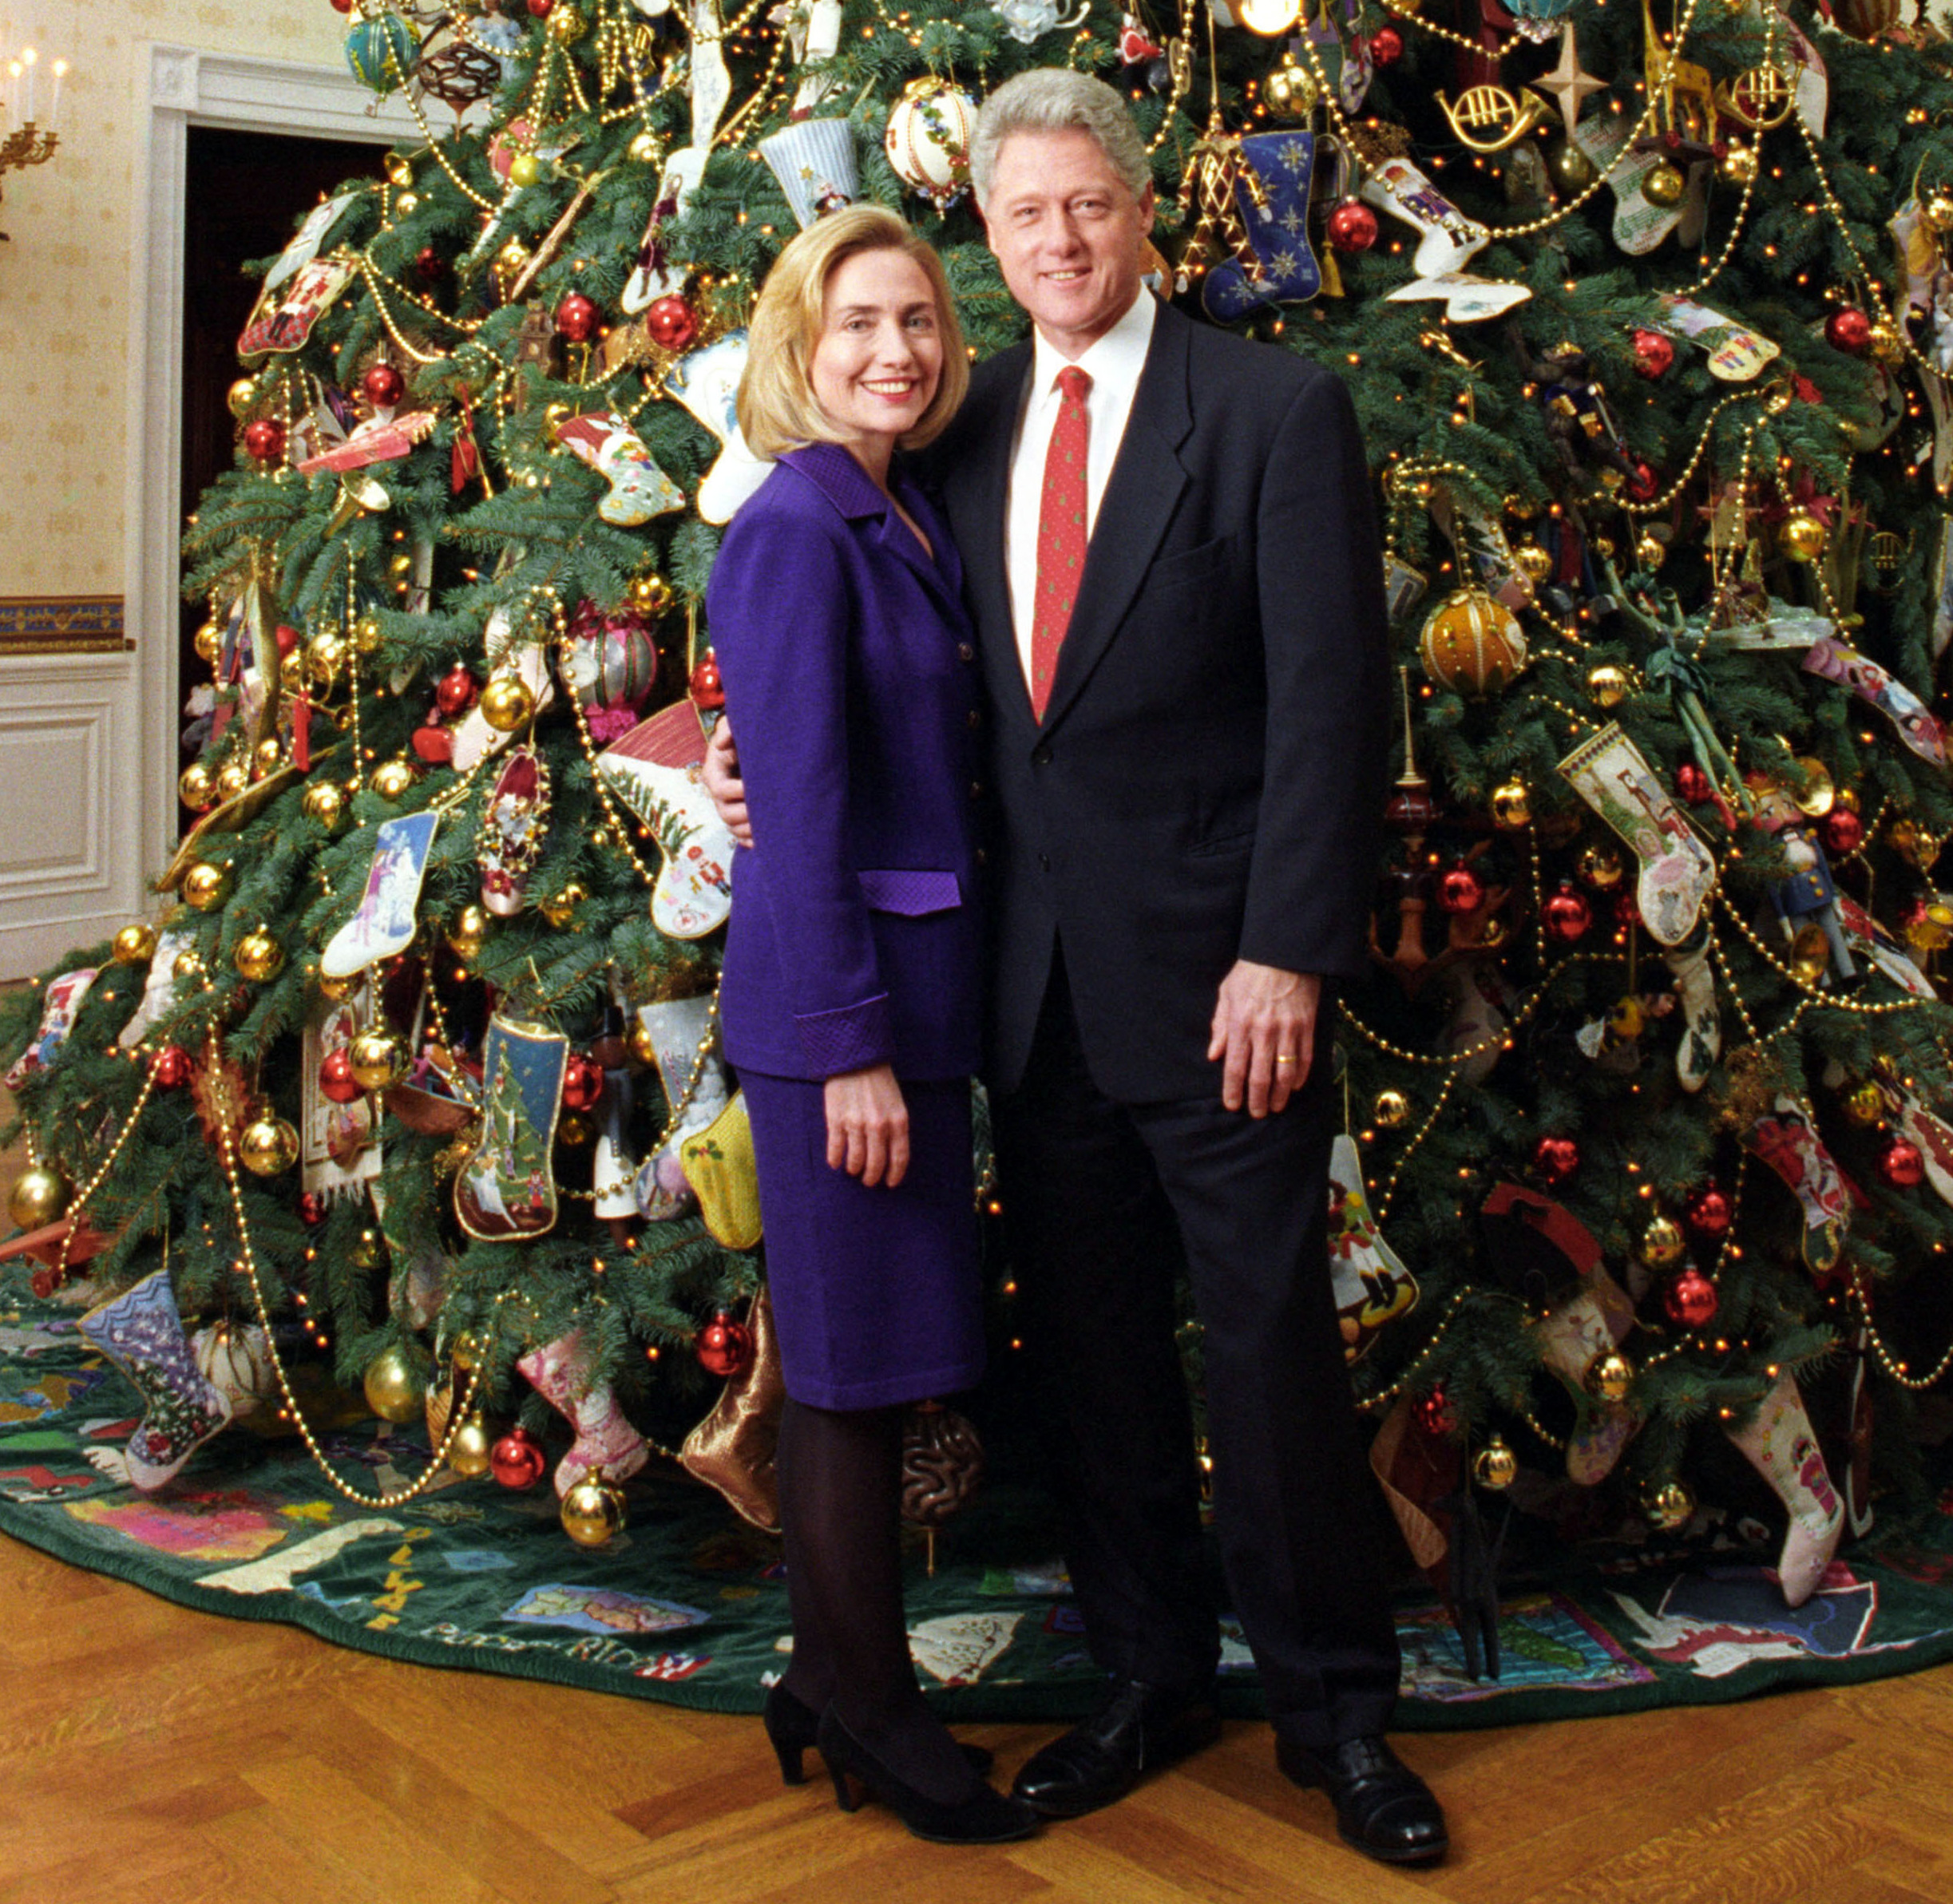 File:Bill and Hillary Clinton Christmas Portrait 1996 (cropped1 ...